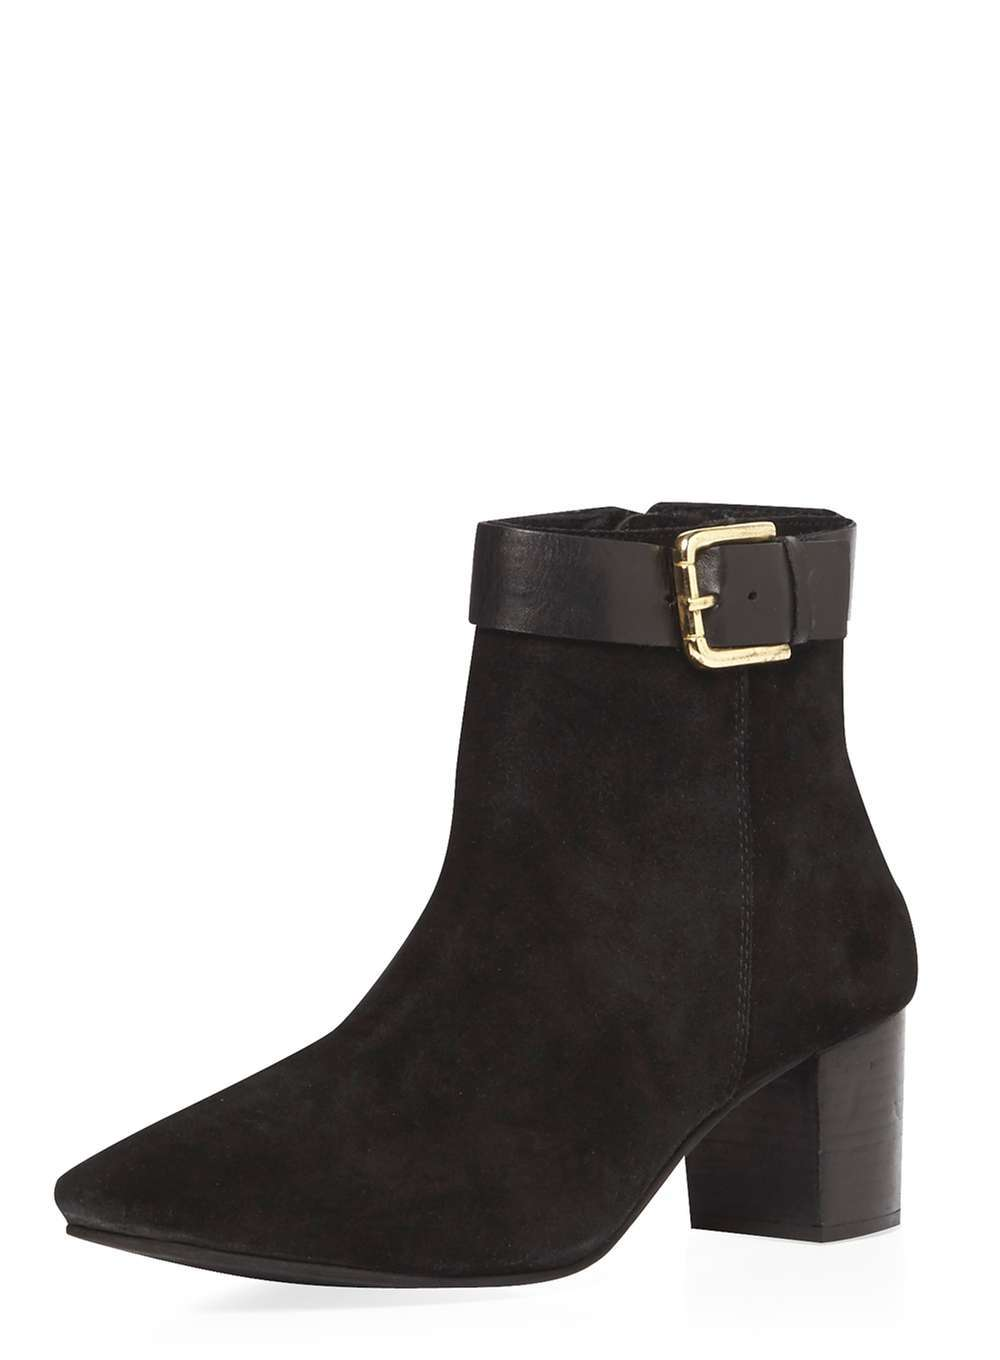 Womens *Ravel Black Ankle Boots Black - predominant colour: black; occasions: casual, work, creative work; material: suede; heel height: mid; embellishment: buckles; heel: block; toe: pointed toe; boot length: ankle boot; style: standard; finish: plain; pattern: plain; wardrobe: basic; season: a/w 2016